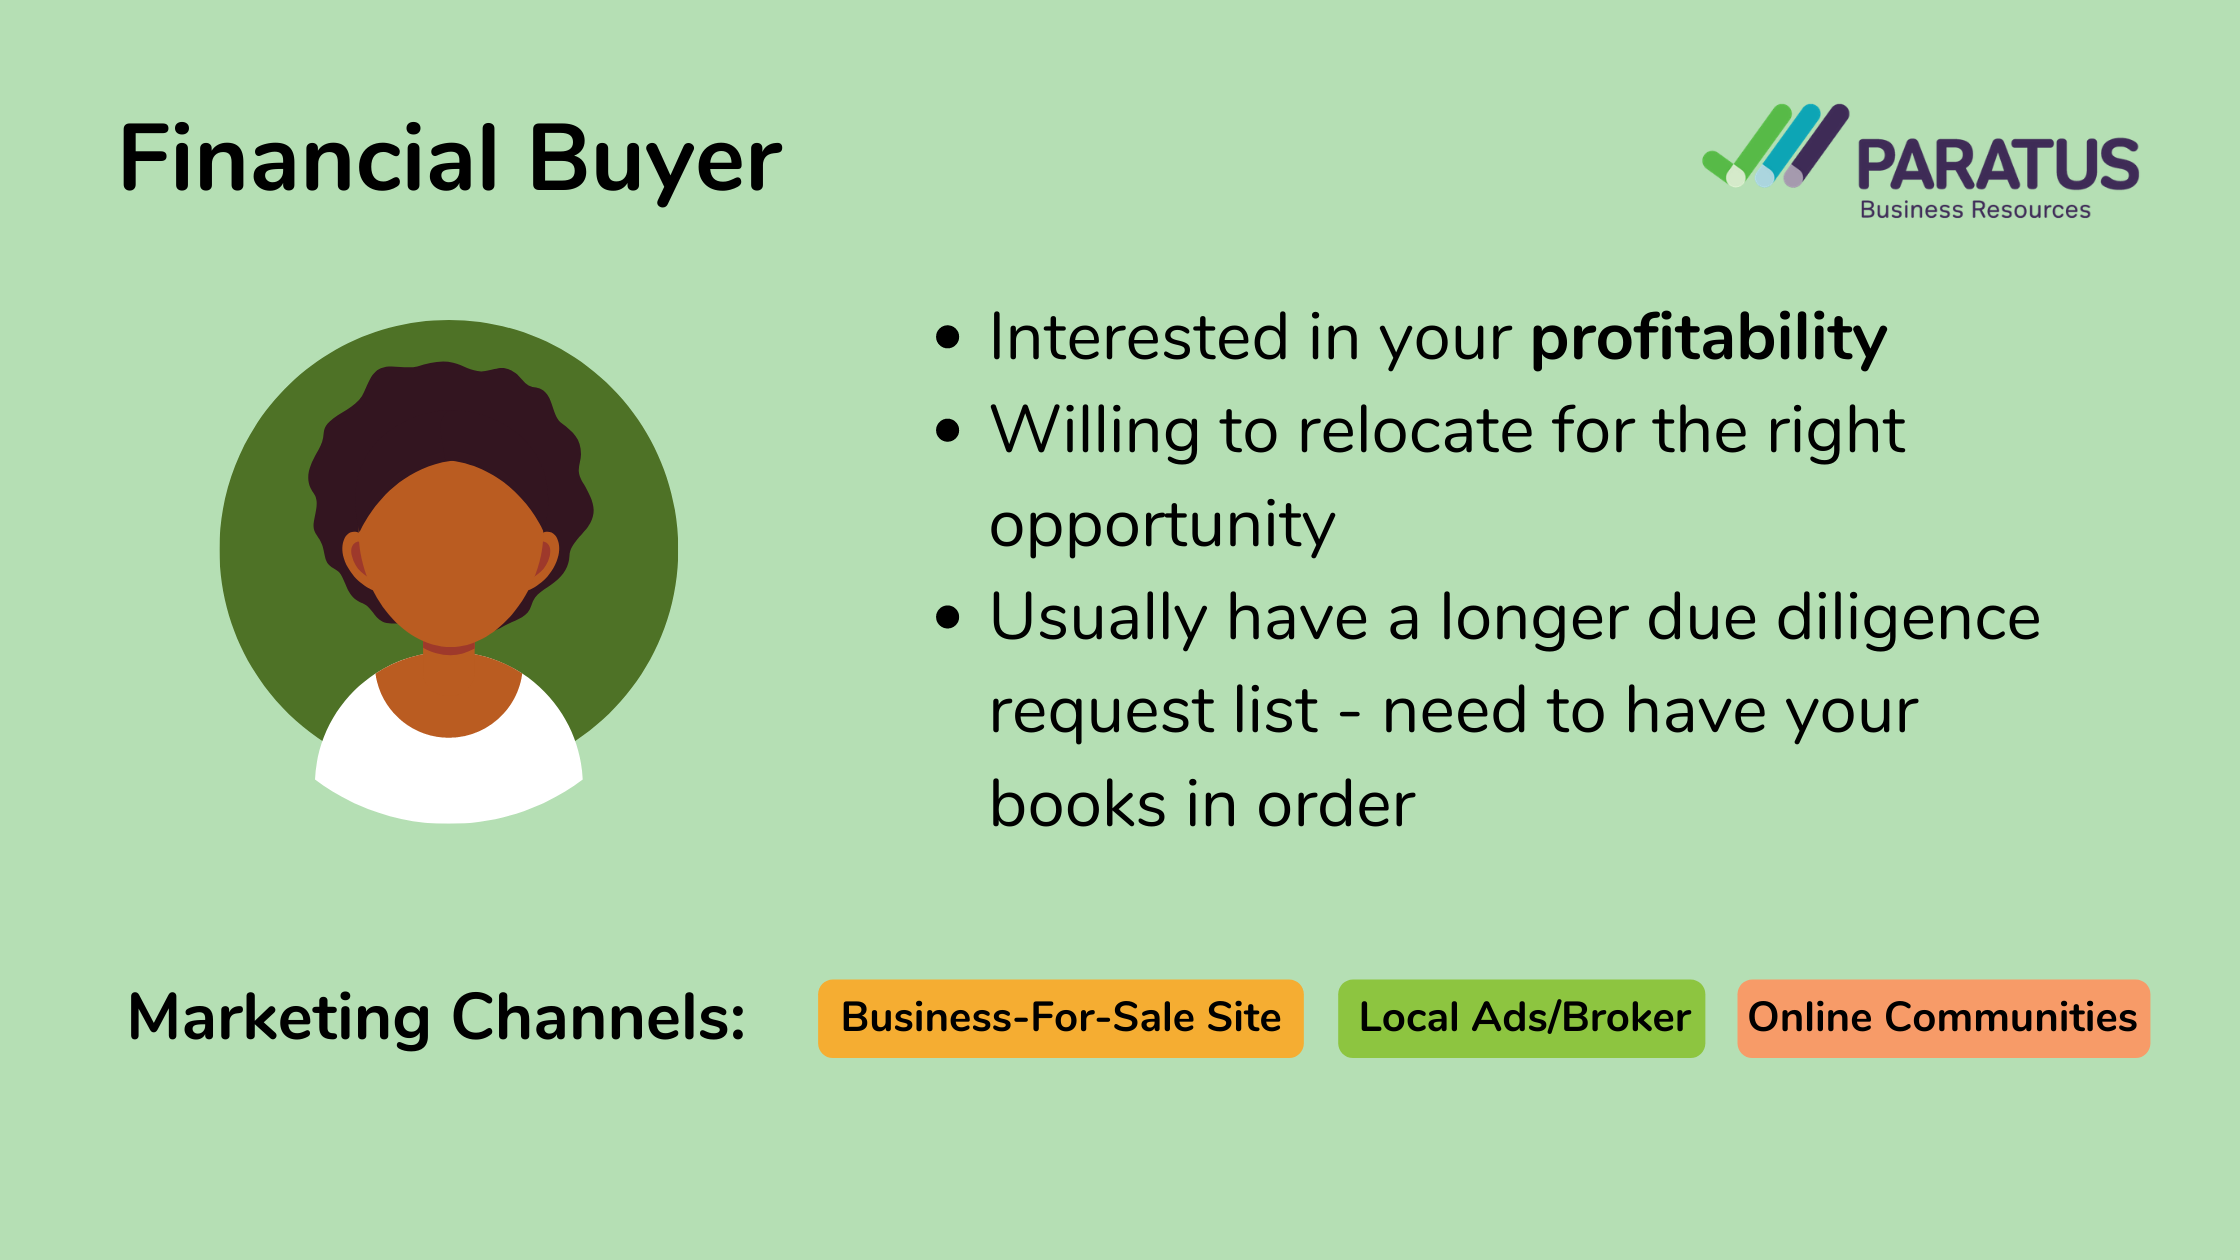 Image describing that Financial Buyers are interested in your profitability. This makes them willing to relocate for the right opportunity but expect a deeper due diligence period.